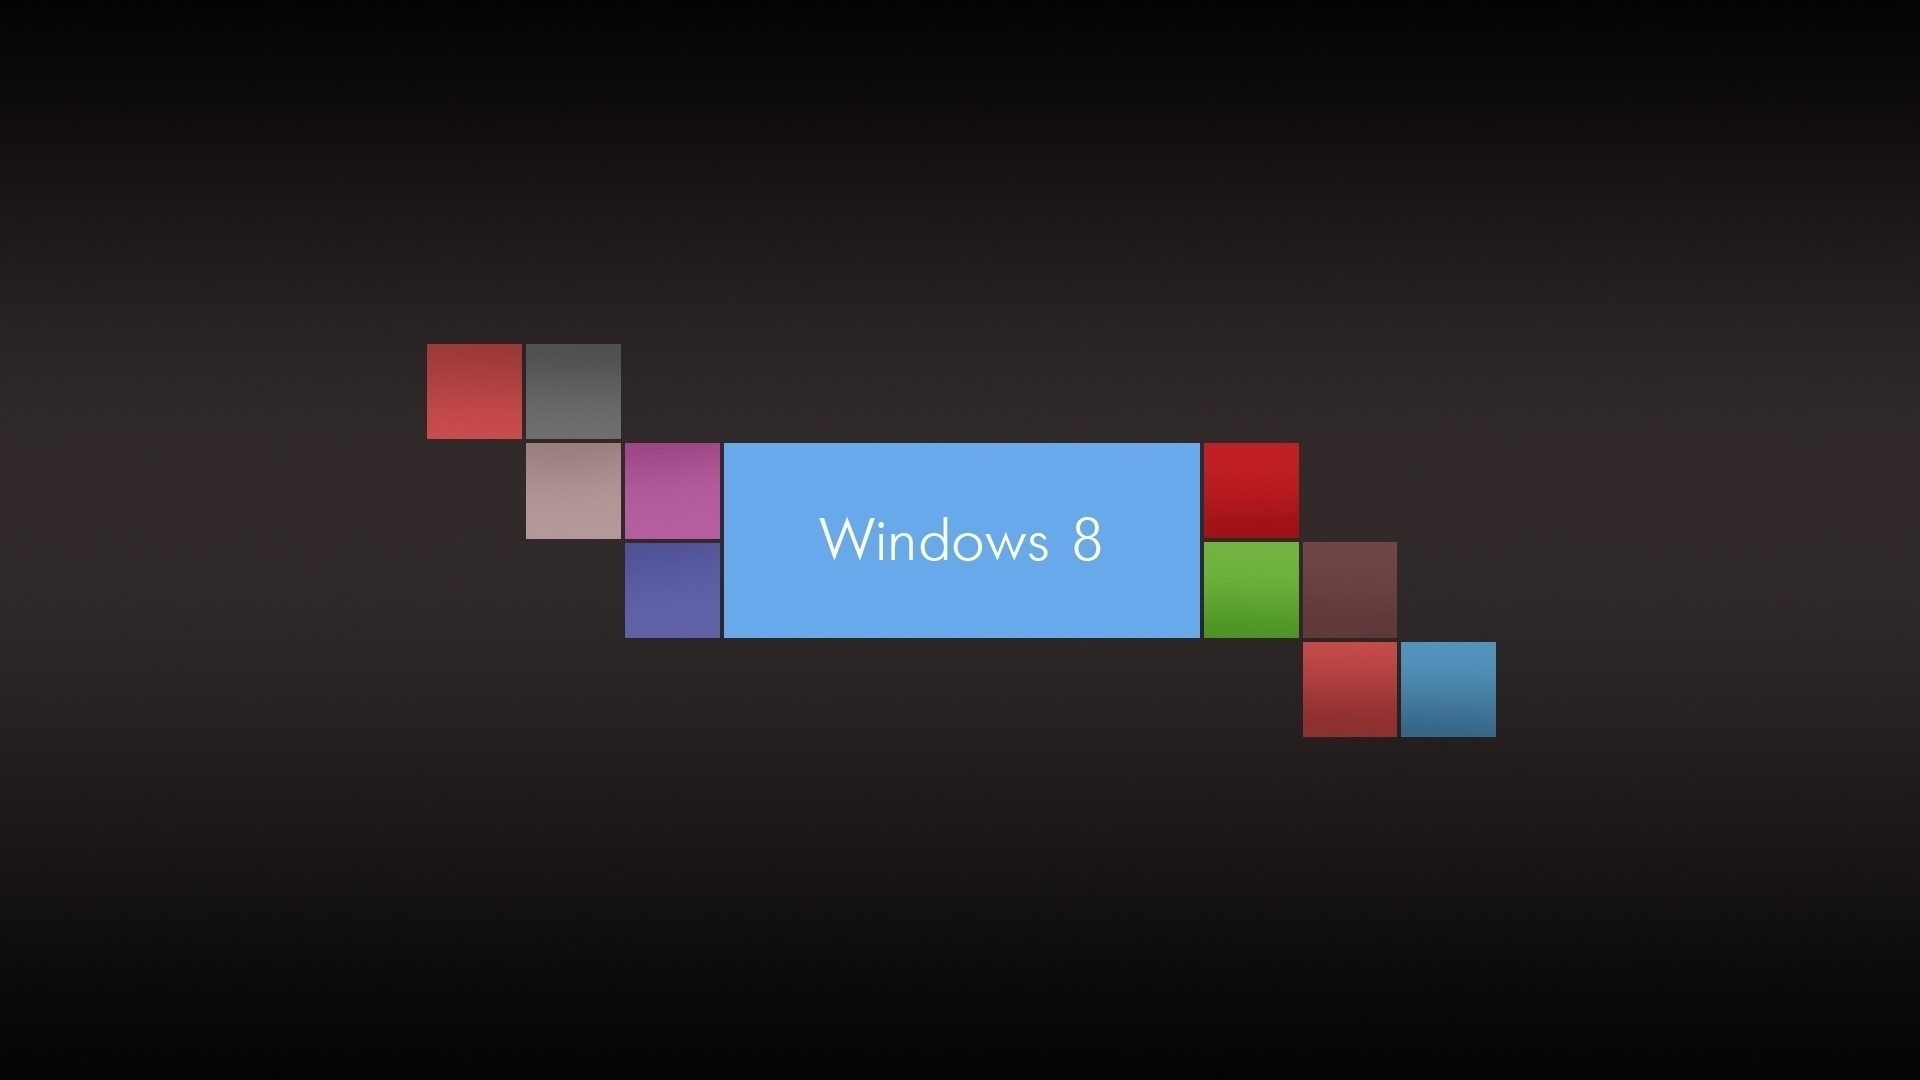 Windows 8 плитки и лого